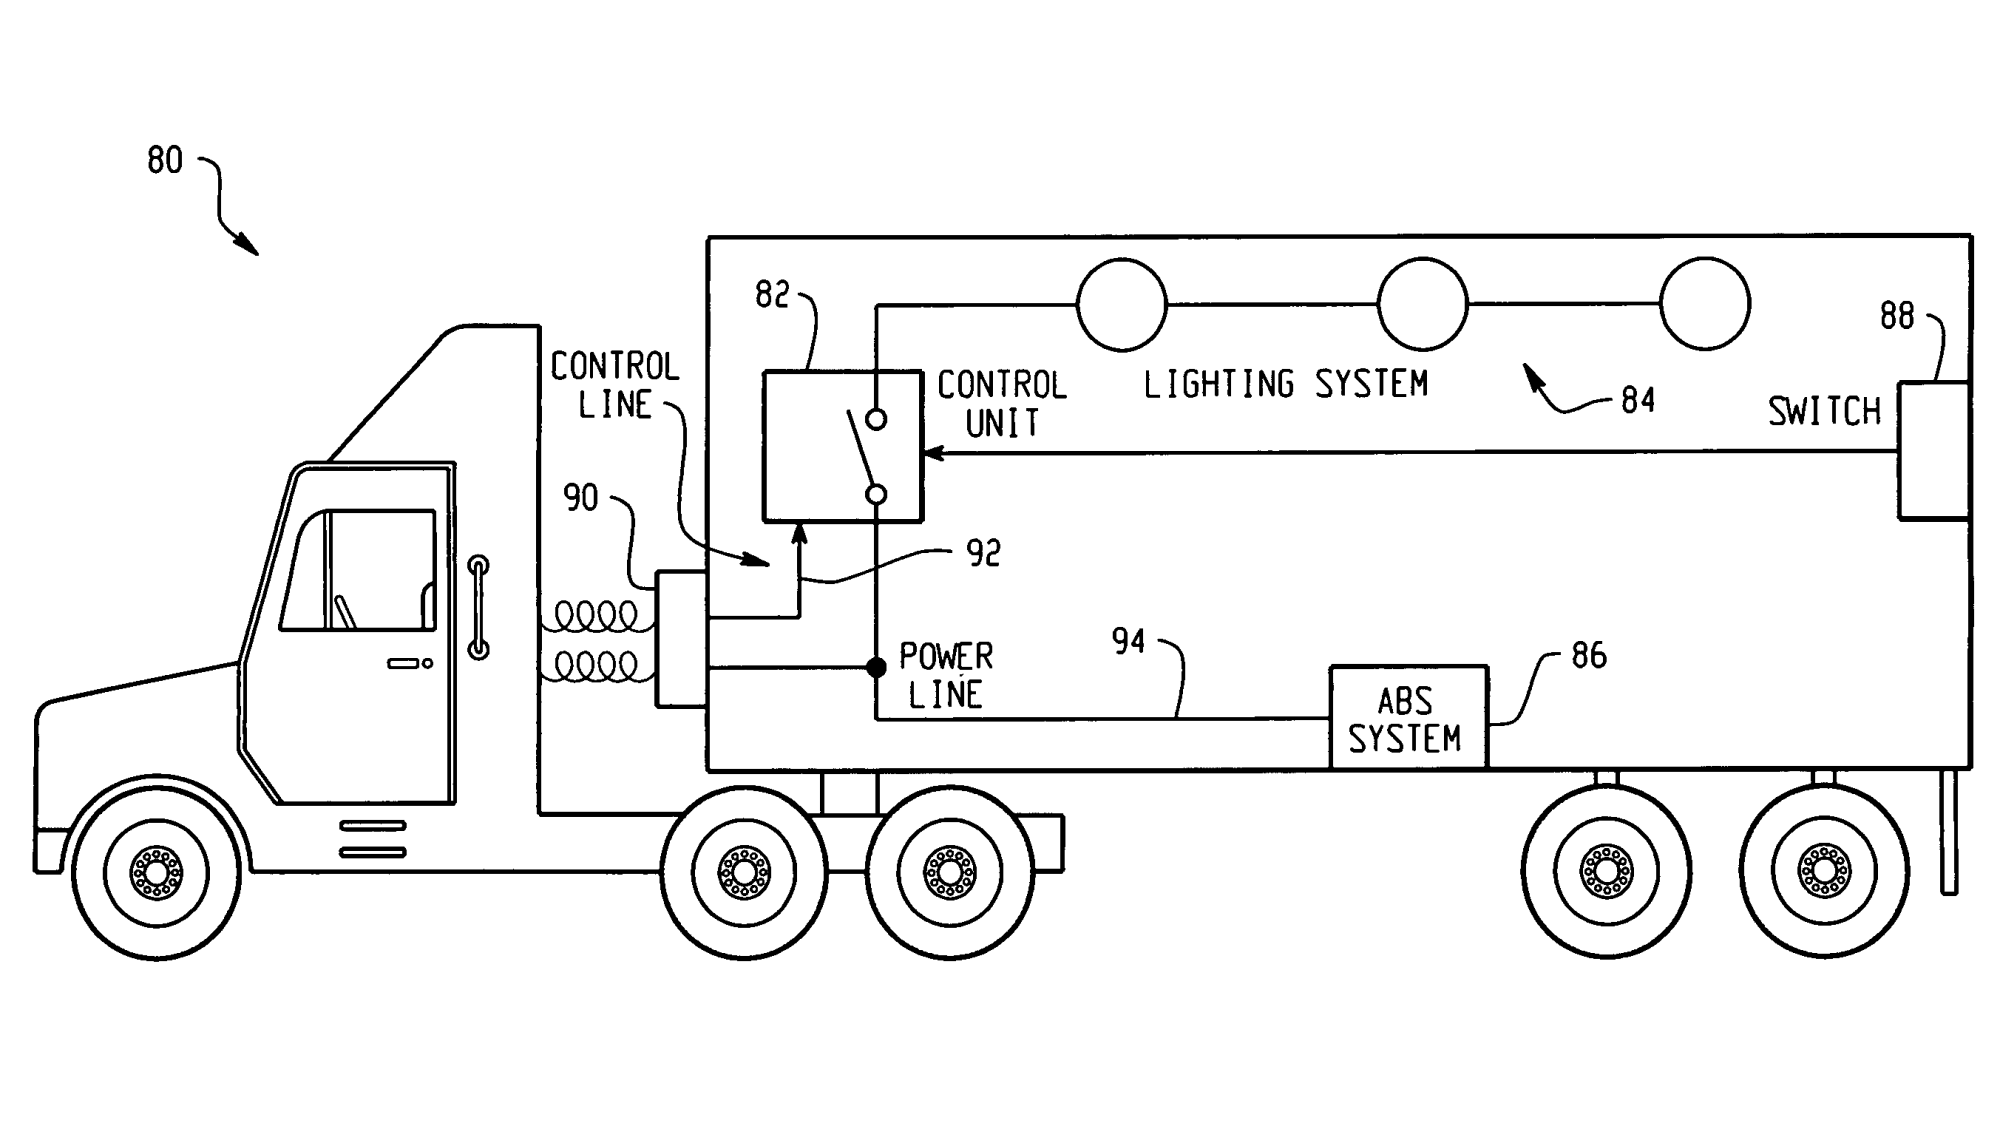 hight resolution of phillips sae j560 wiring diagram wiring diagramsphillips sae j560 wiring diagram wiring diagrams truck 7 pin